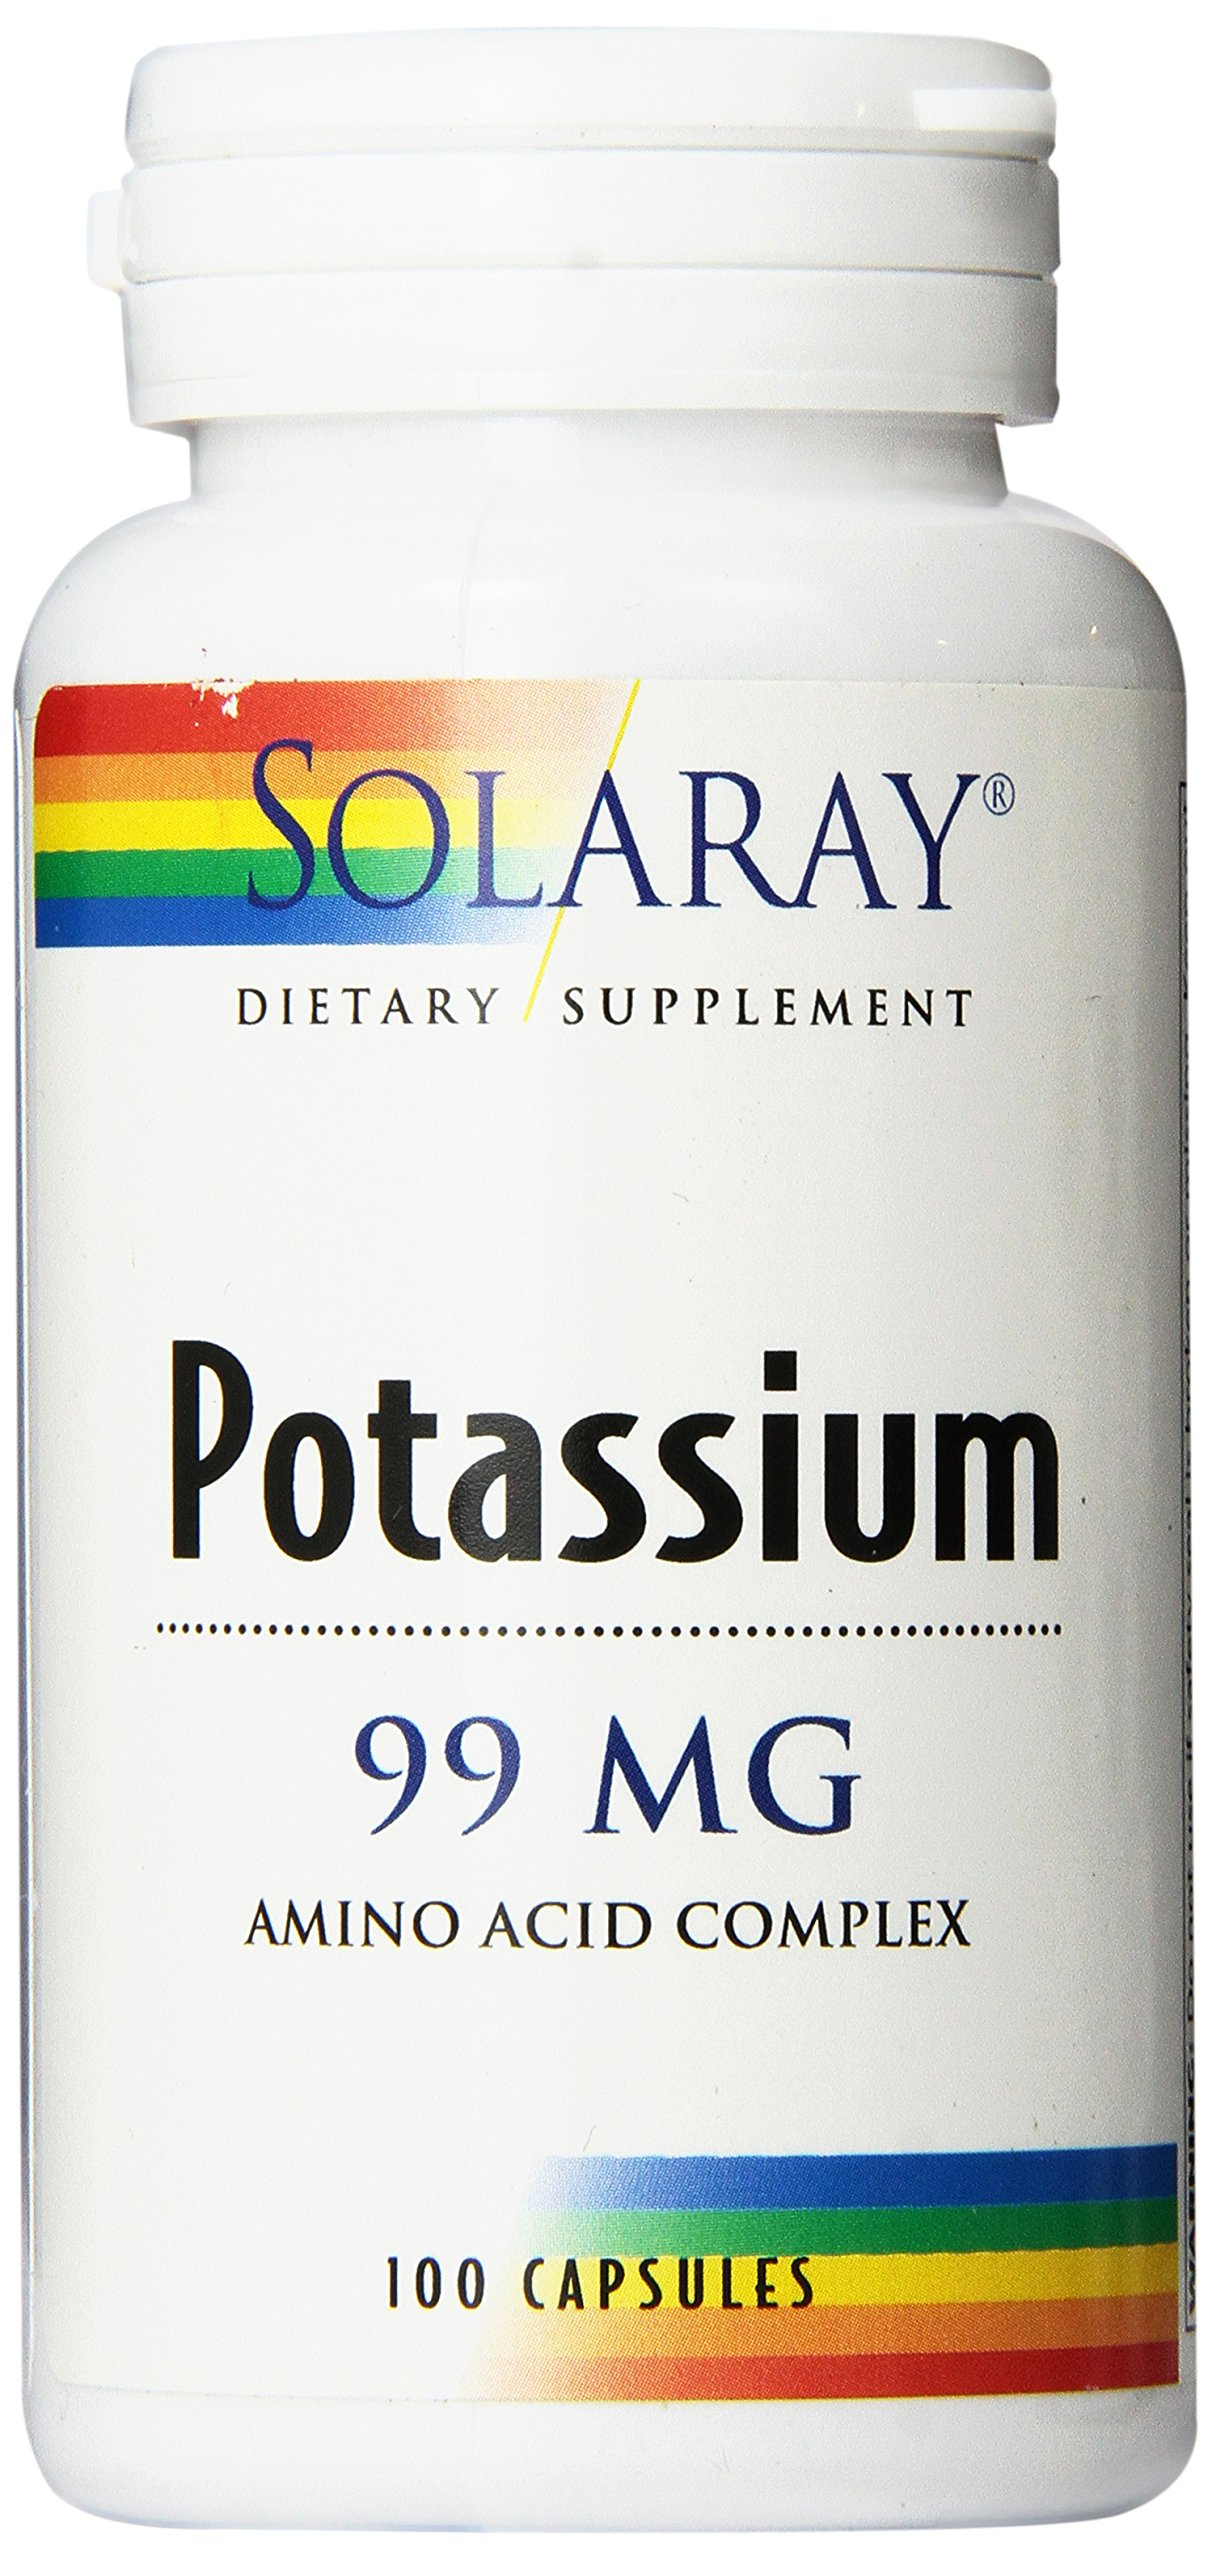 Solaray Potassium Supplement, 99 mg, 100 Count